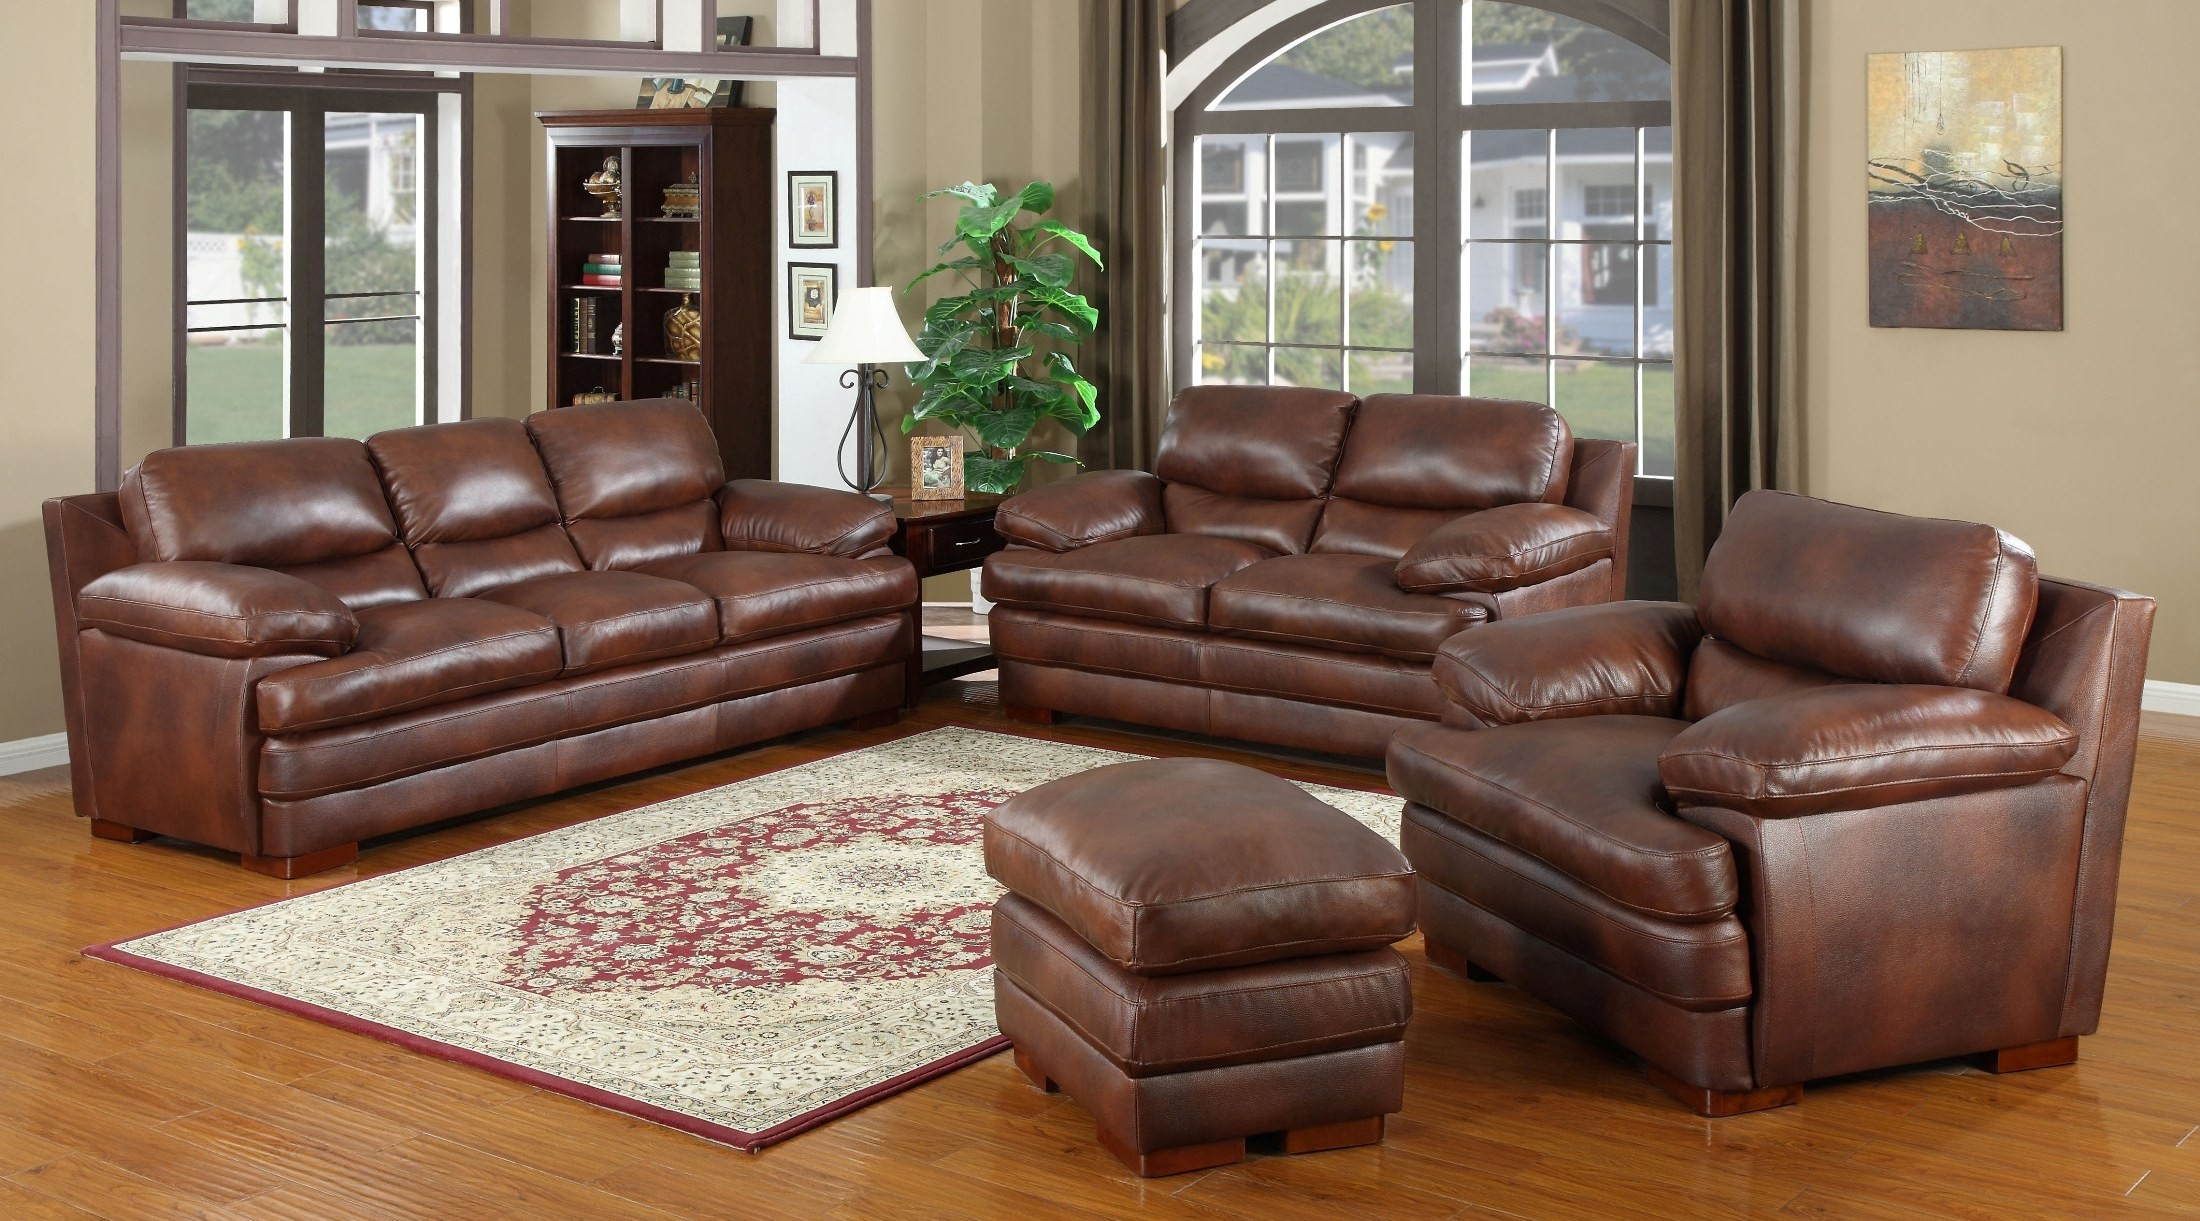 baron brown living room set from leather italia coleman furniture. Black Bedroom Furniture Sets. Home Design Ideas